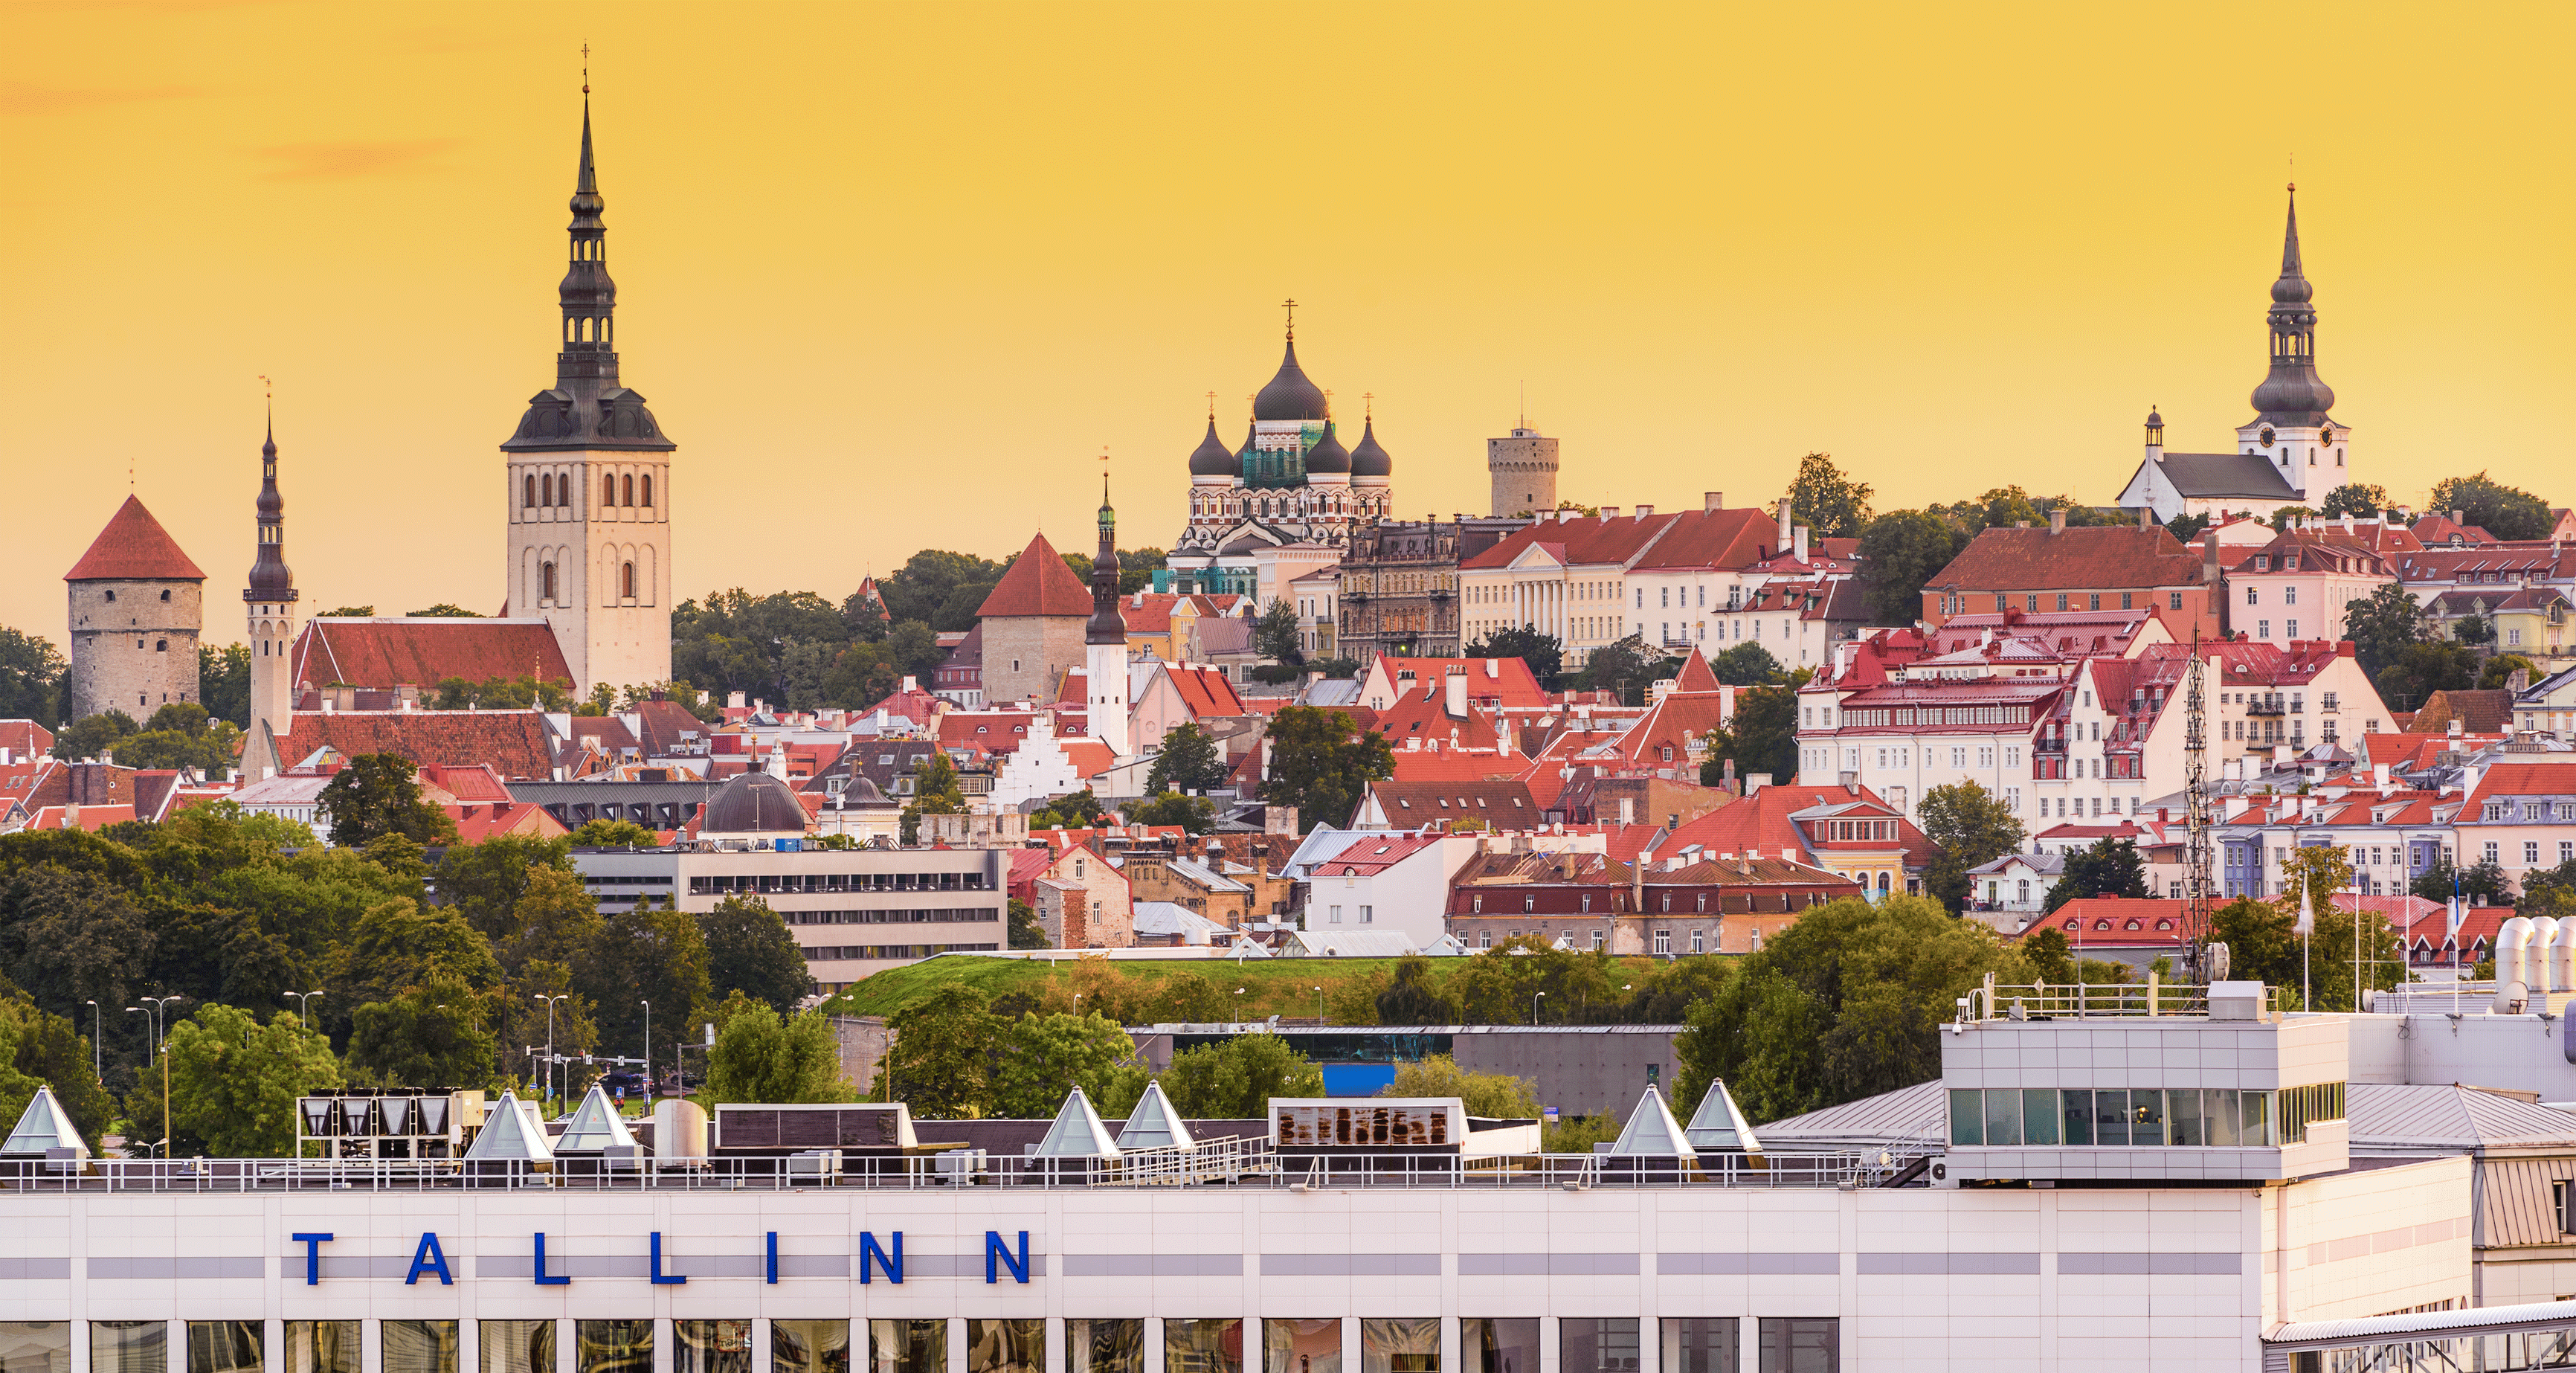 Tallinn: a journey through the old pavements of the European capital